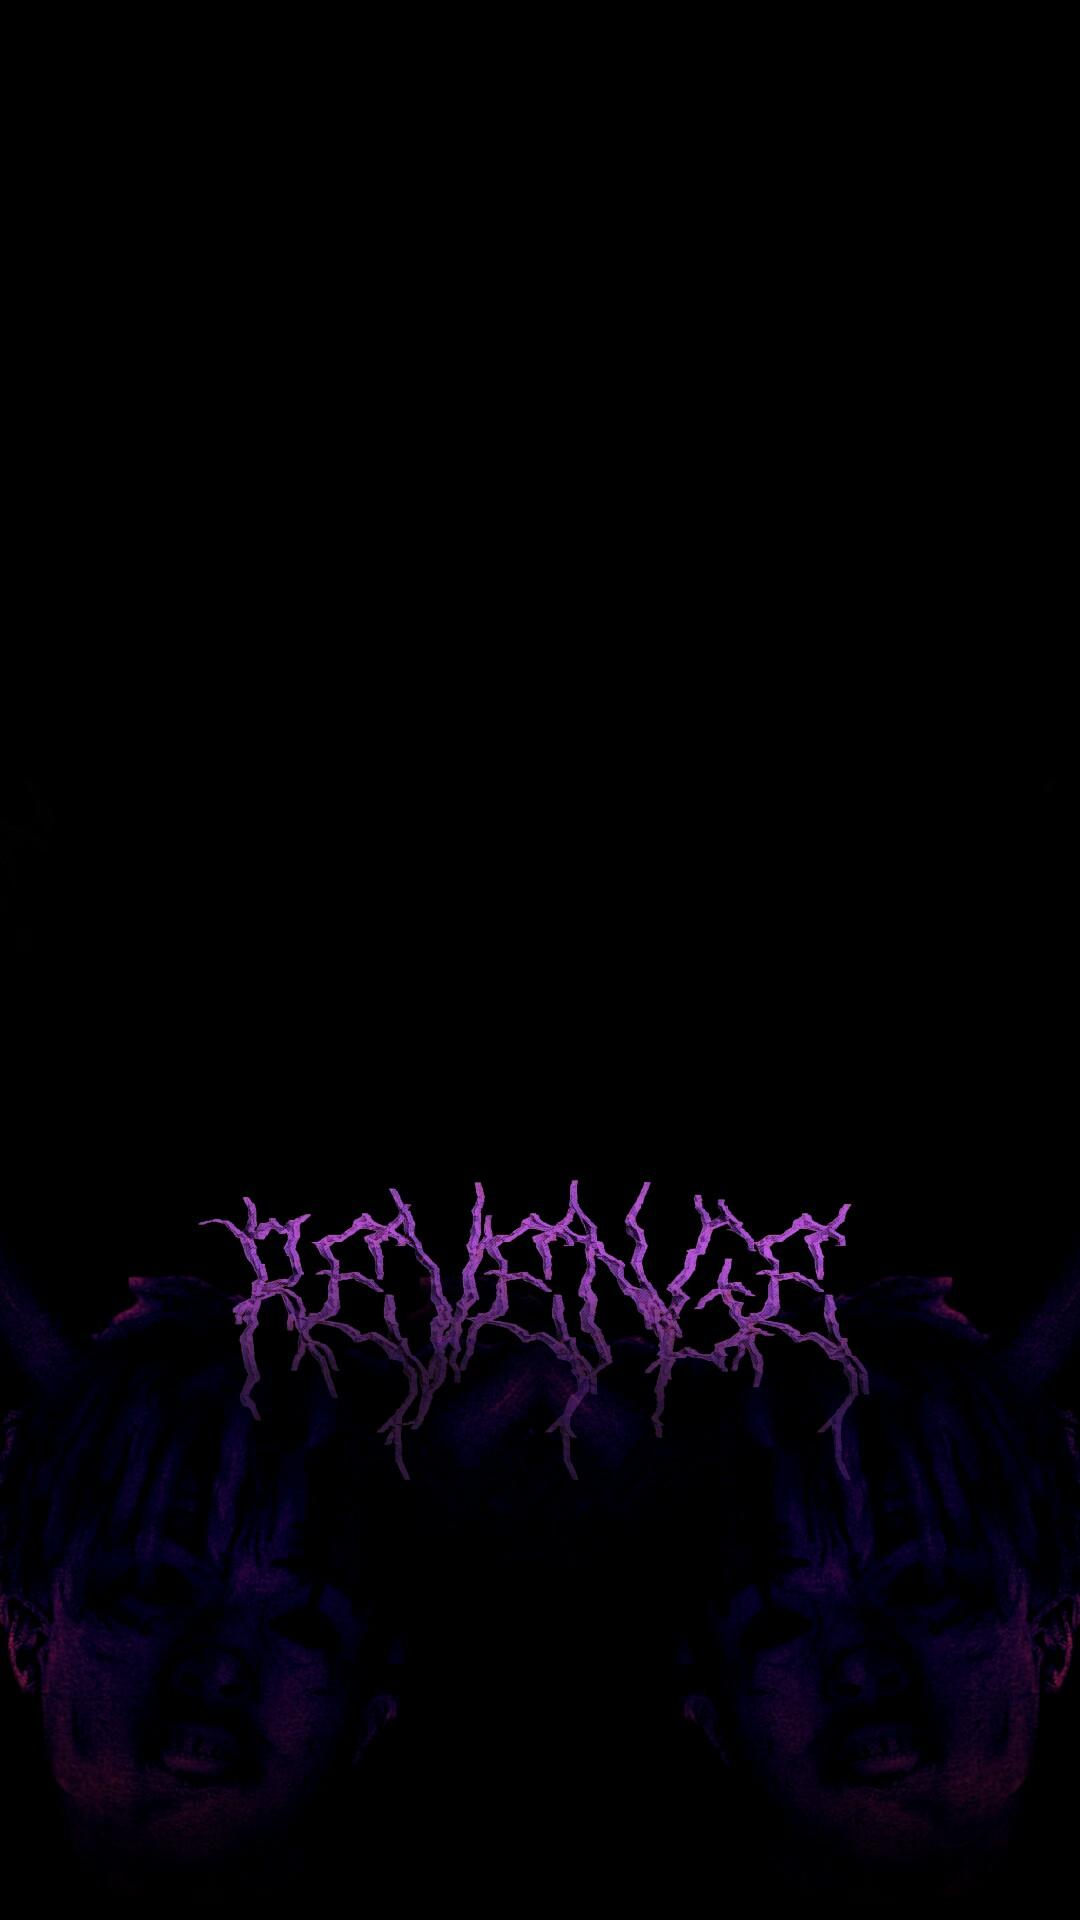 XXXTentacion Wallpapers   Top XXXTentacion Backgrounds 1080x1920